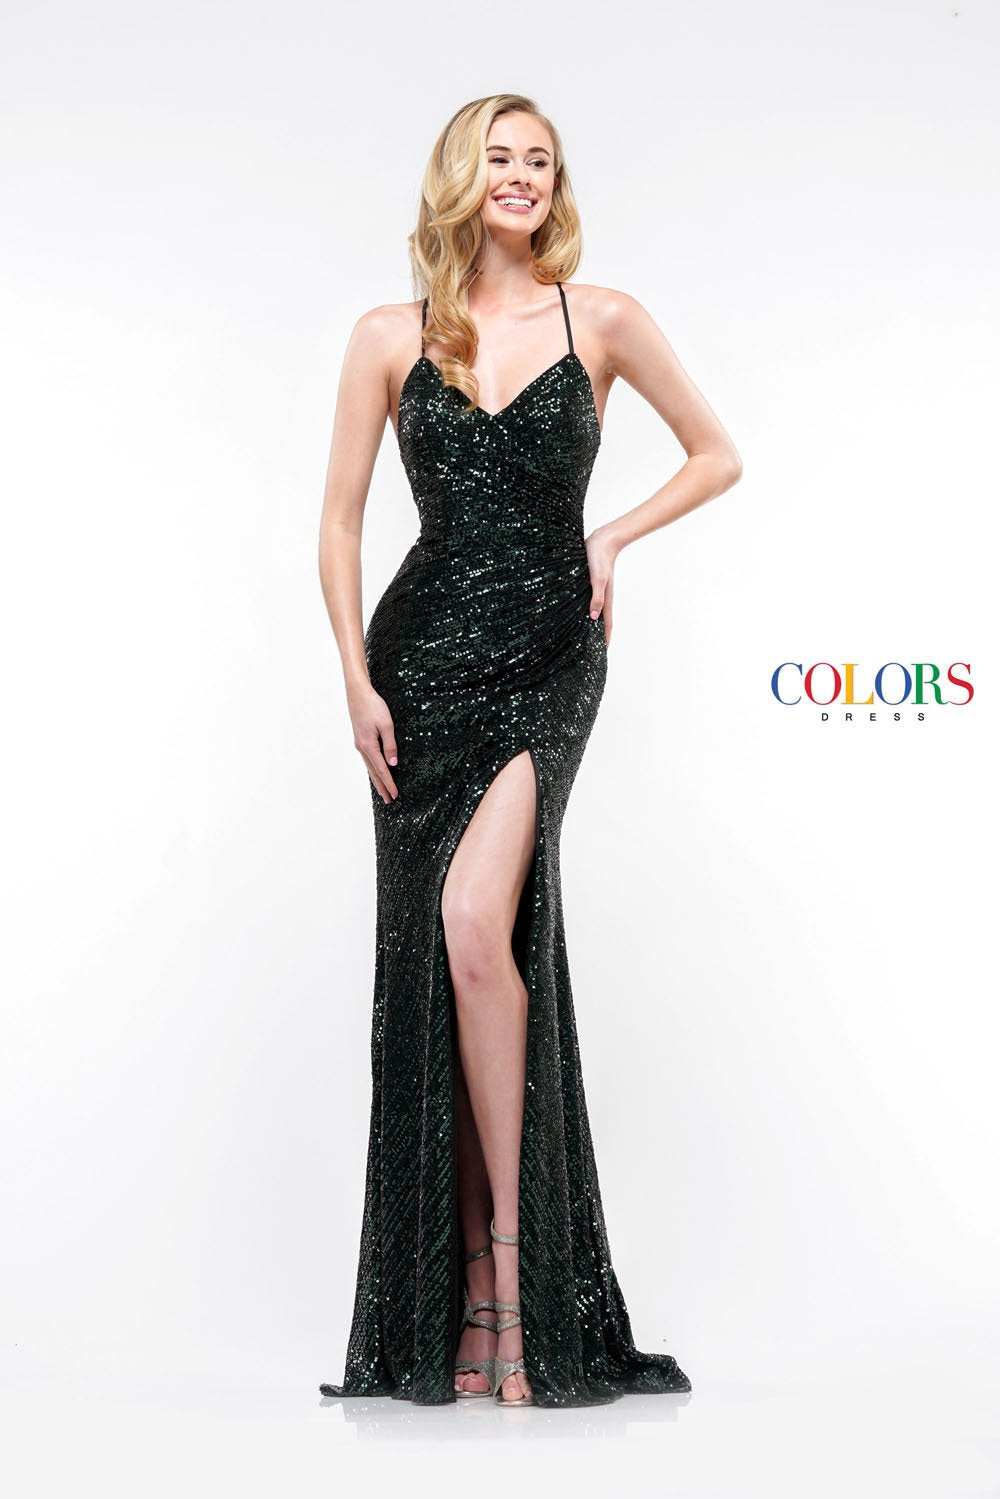 Colors Dress 2188 prom dress images.  Colors 2188 dresses are available in these colors: Gunmetal, Deep Green, Nude, Wine.